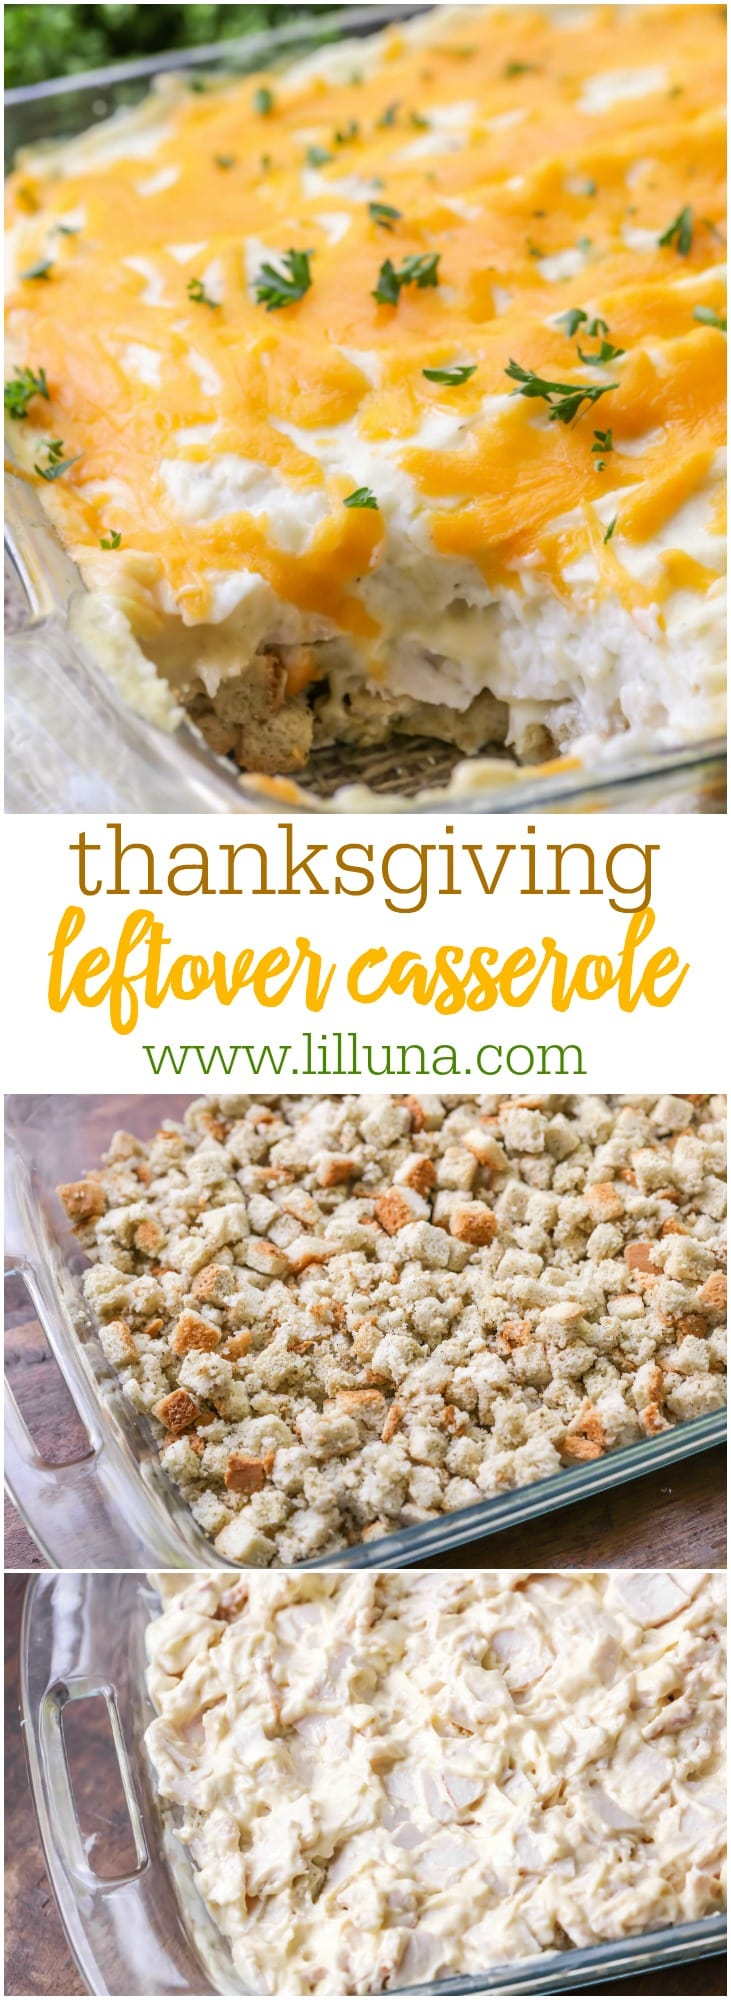 Thanksgiving Leftover Casserole - made with mashed potatoes, turkey and stuffing. A great dish to make with leftover food from Turkey Day!